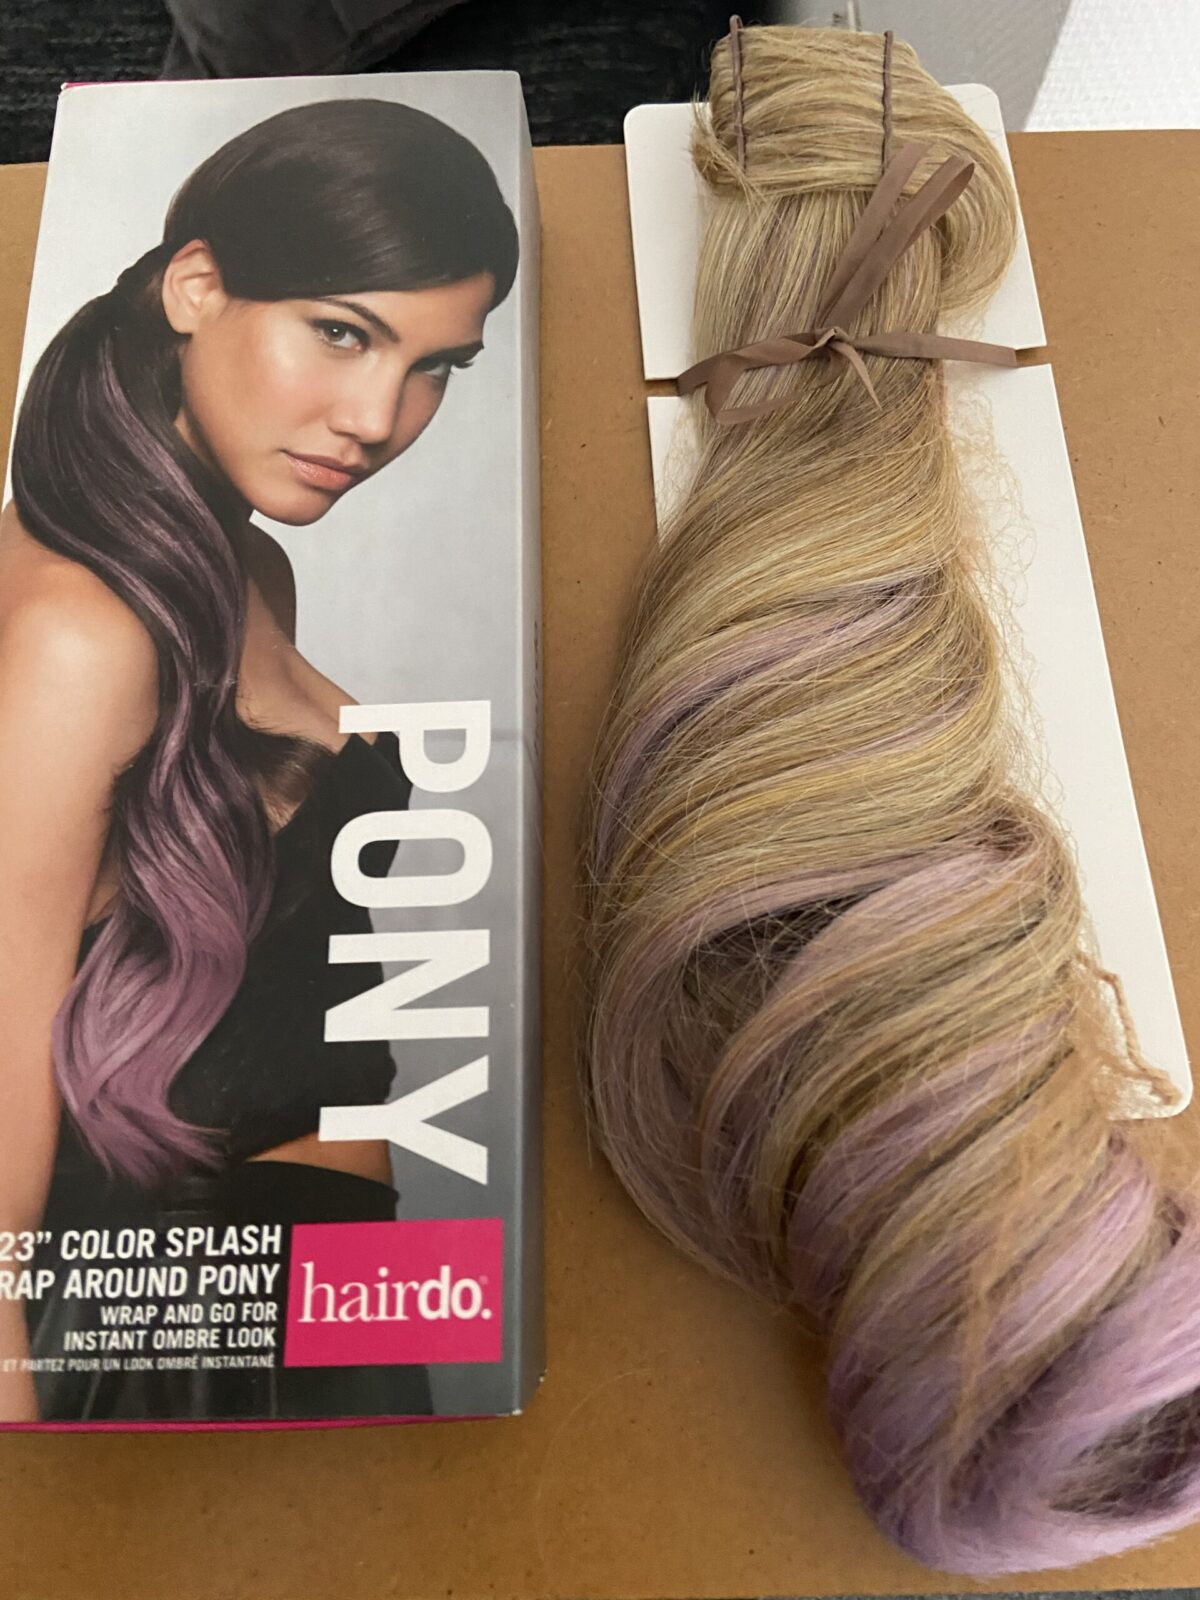 Color Splash Wrap Around Pony Godblond-Mix - Lavendel